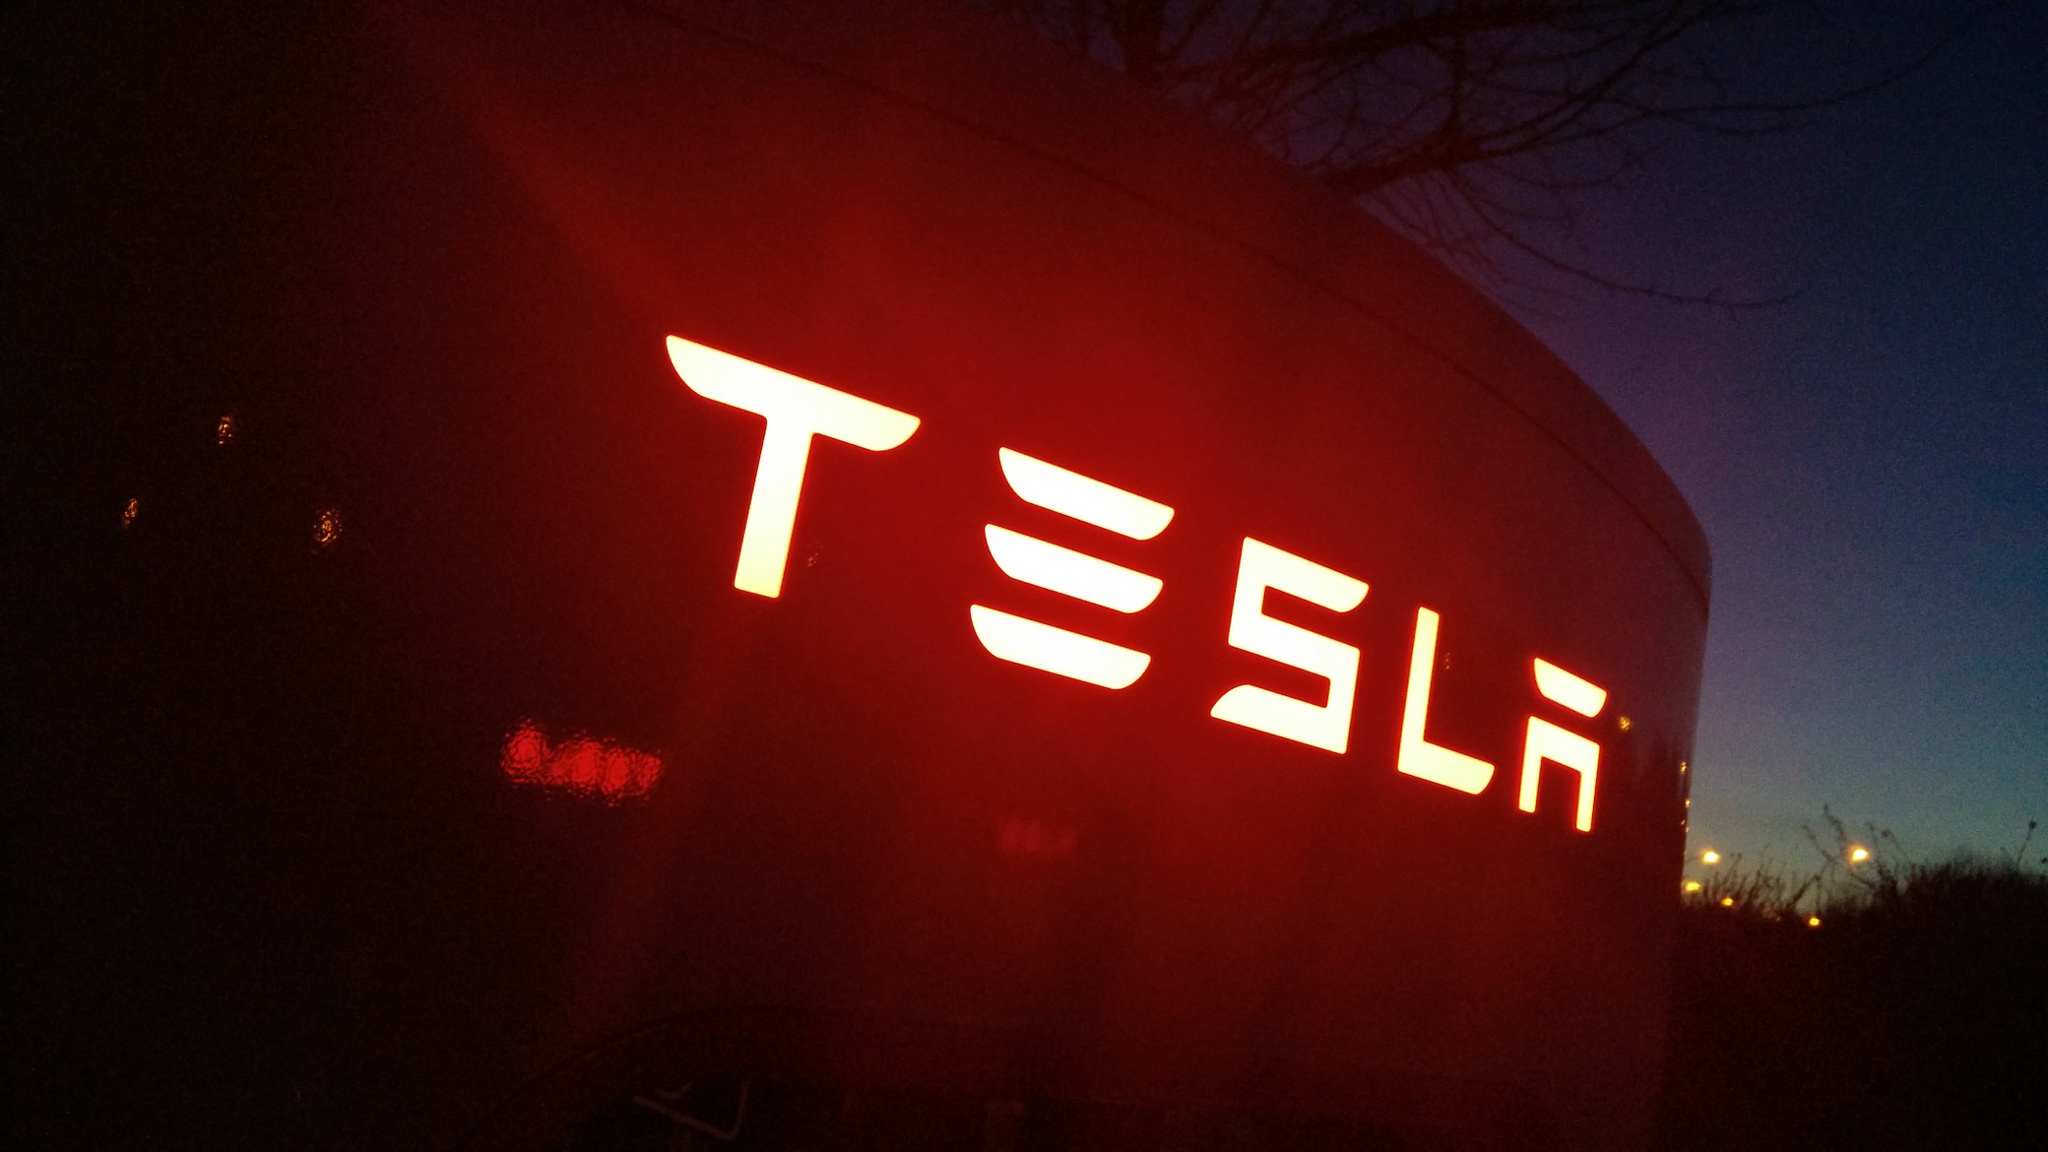 Tesla Supercharger  by r1ch1eb